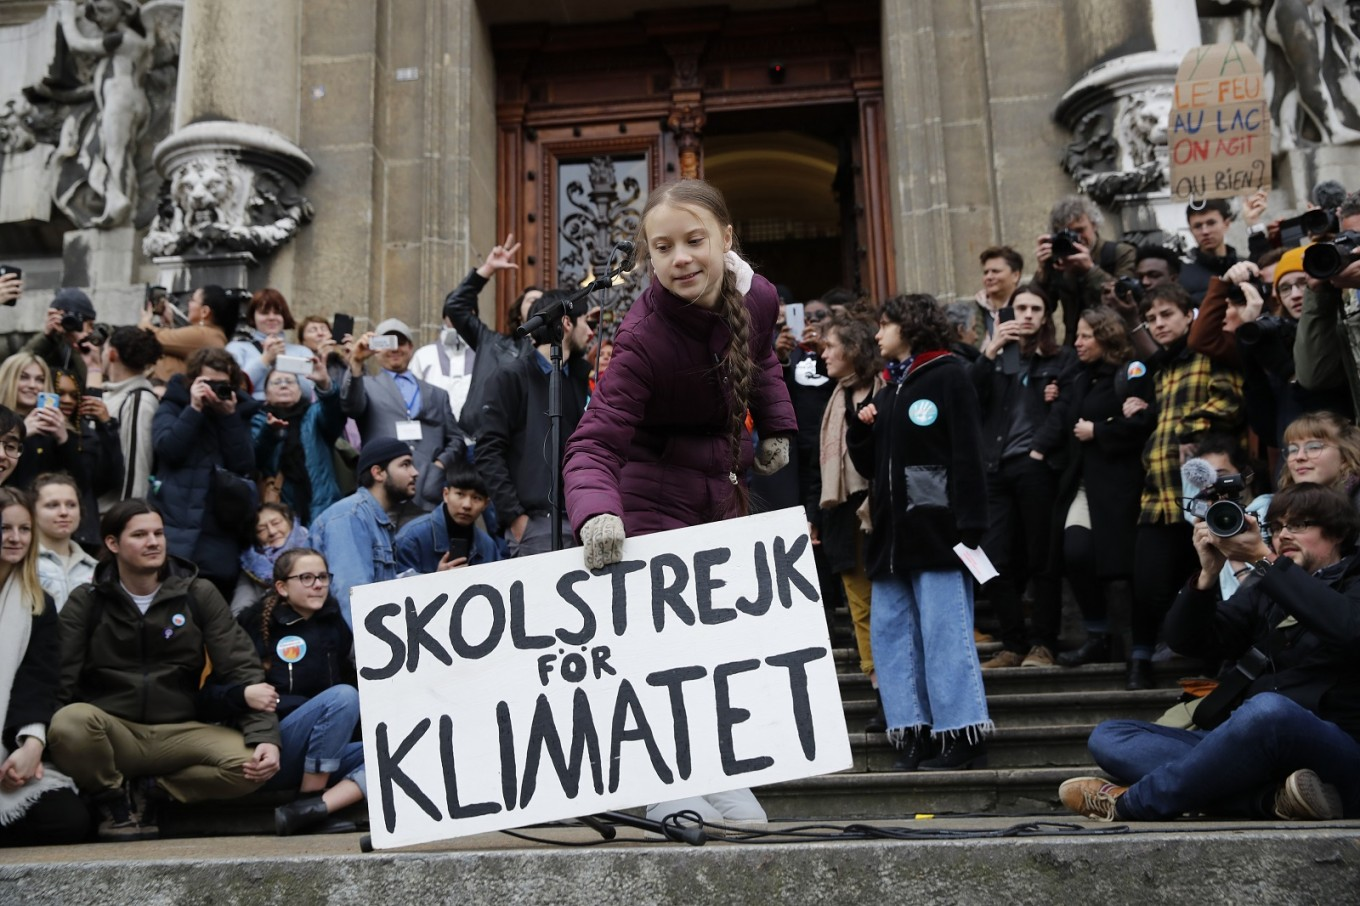 Greta warns world leaders at climate protest before Davos